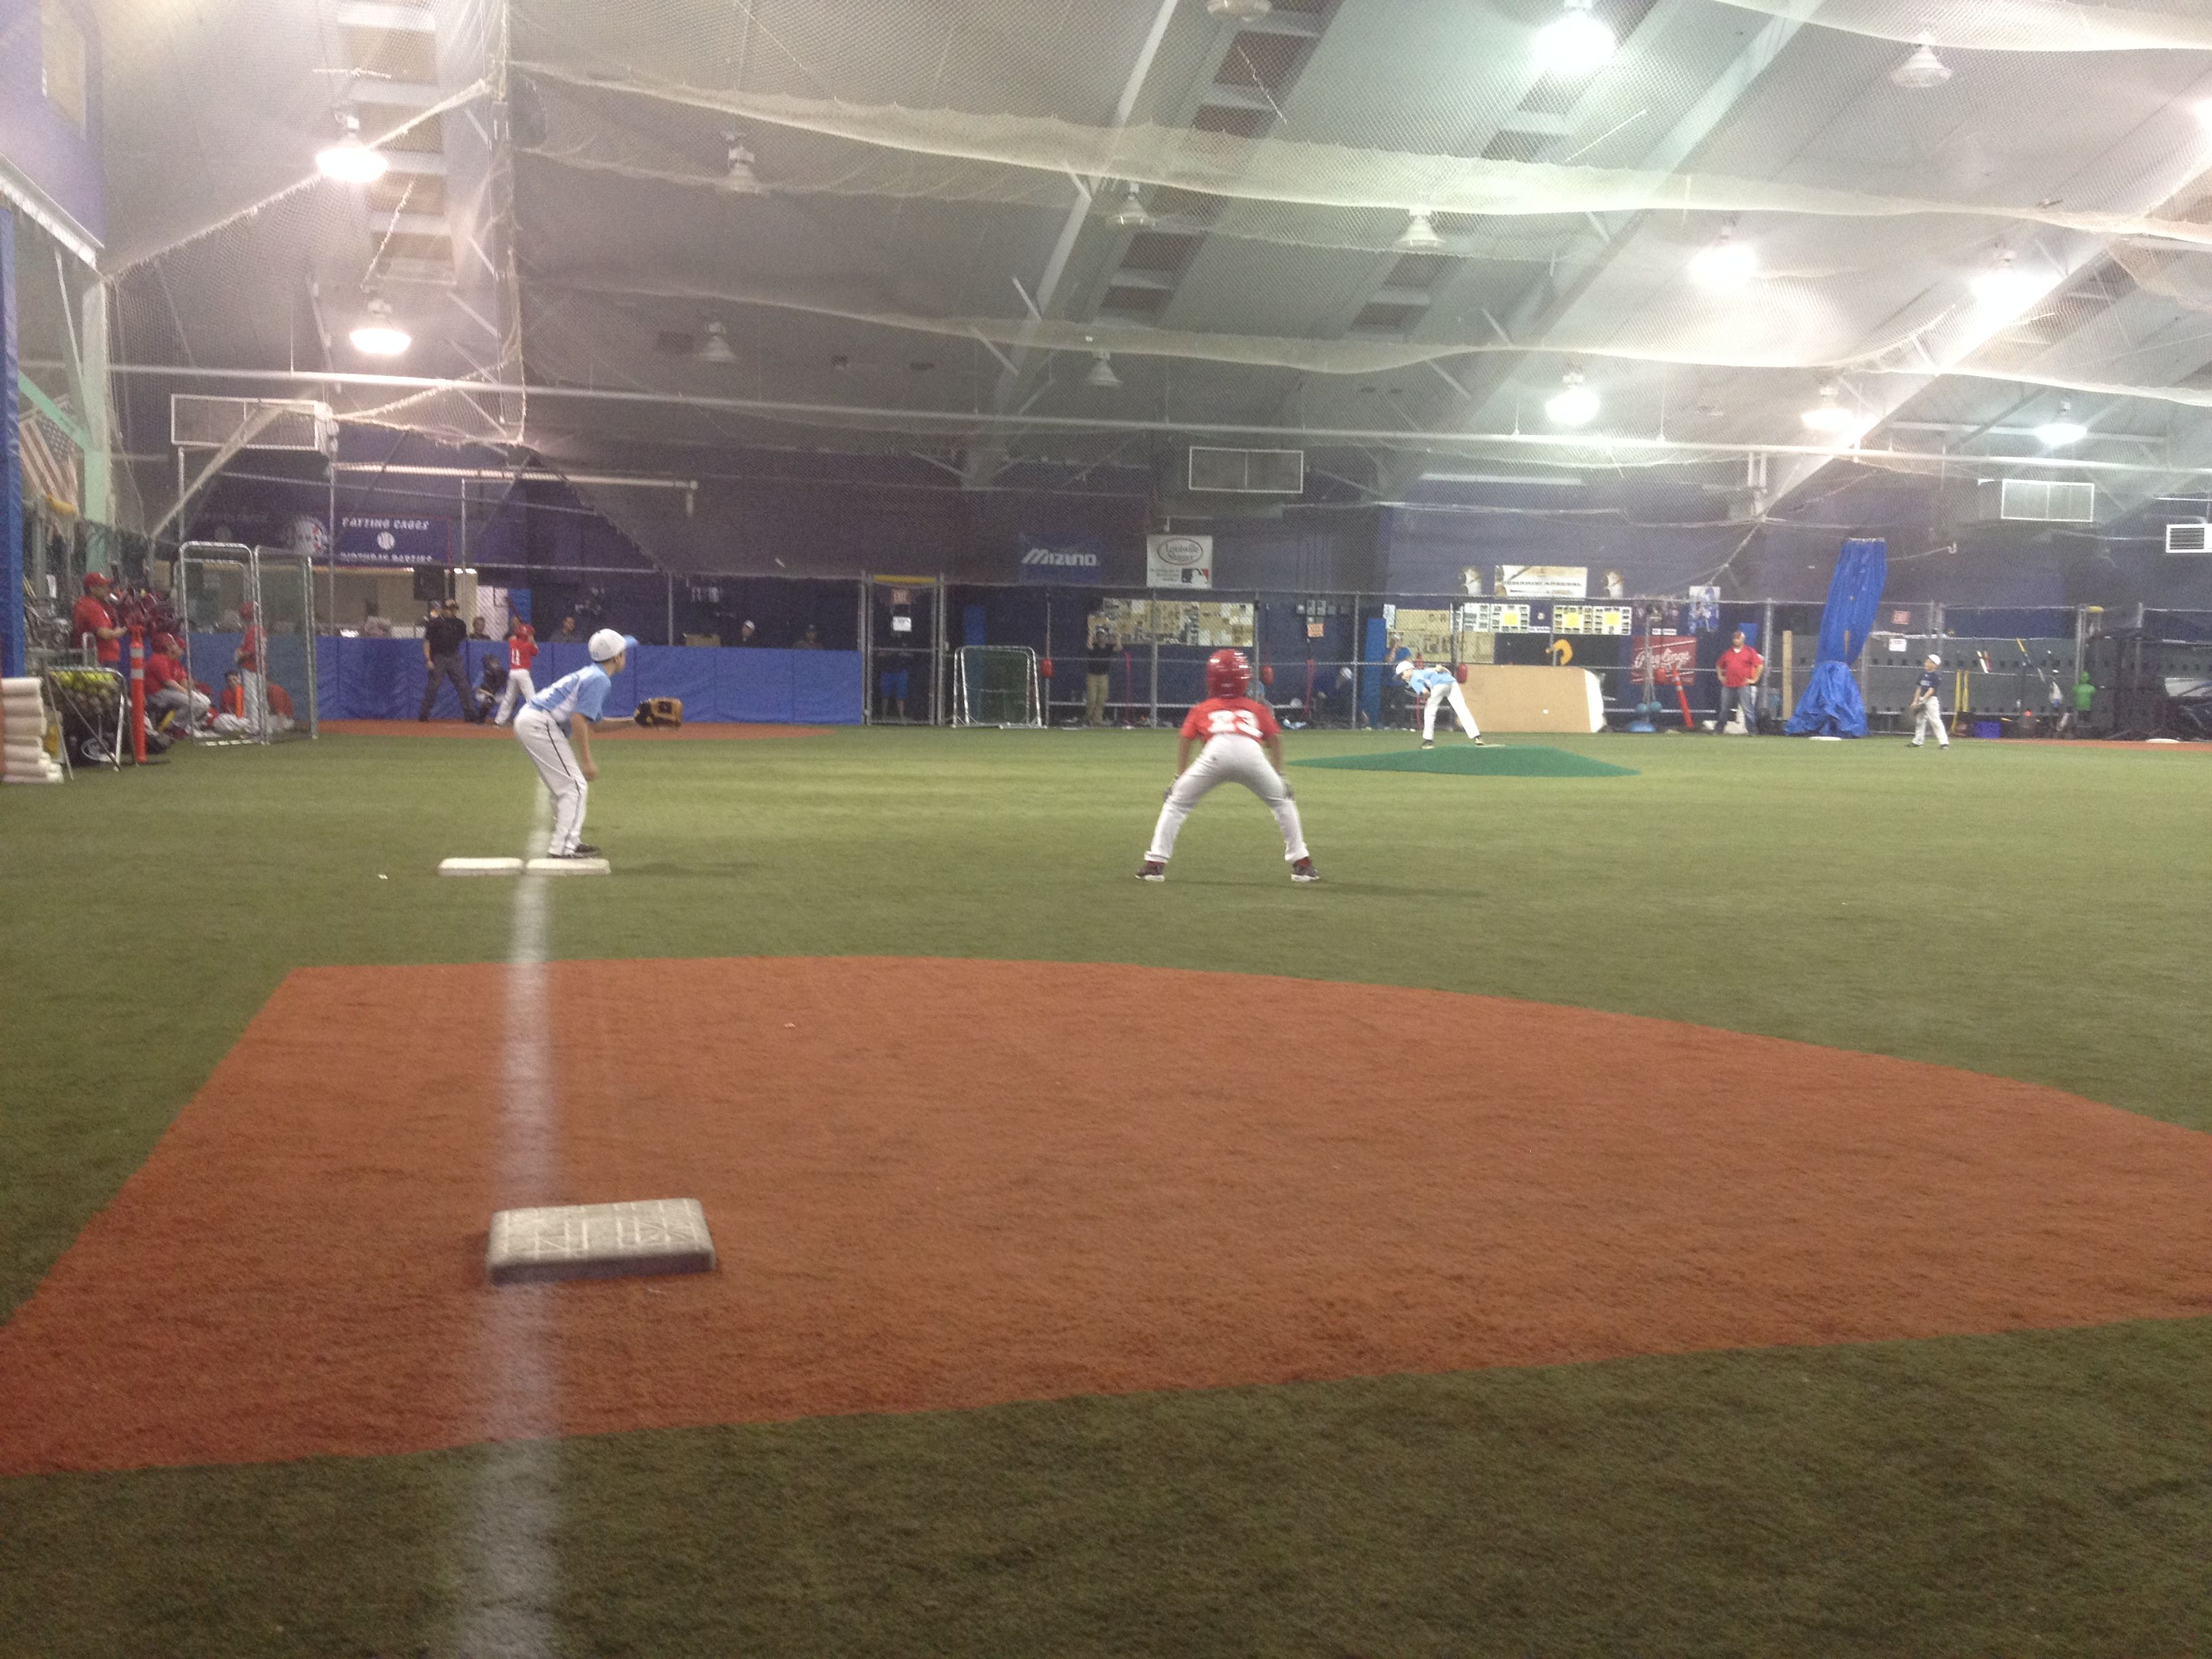 Having trouble finding a field? Our indoor stadium can